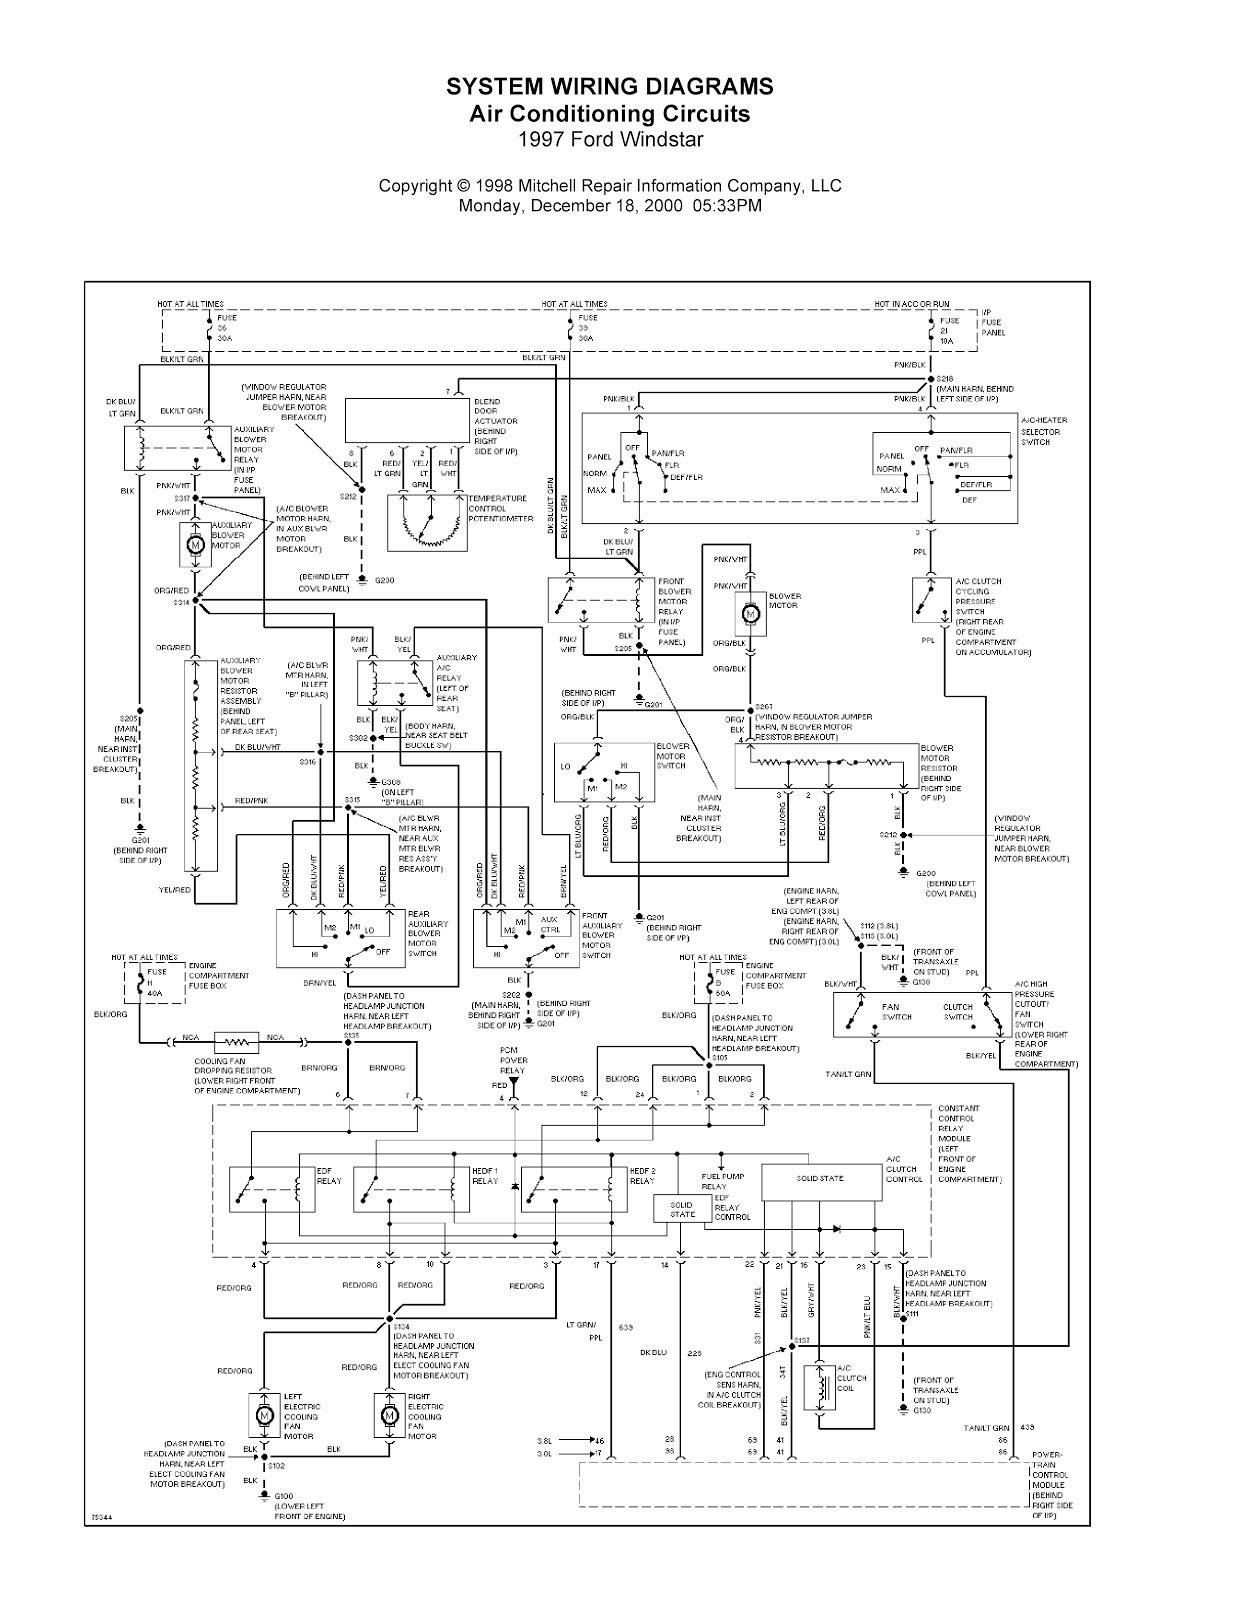 hight resolution of wiring diagram for ford windstar wiring diagram post 1999 ford windstar fuel pump wiring diagram 1999 ford windstar wiring diagrams